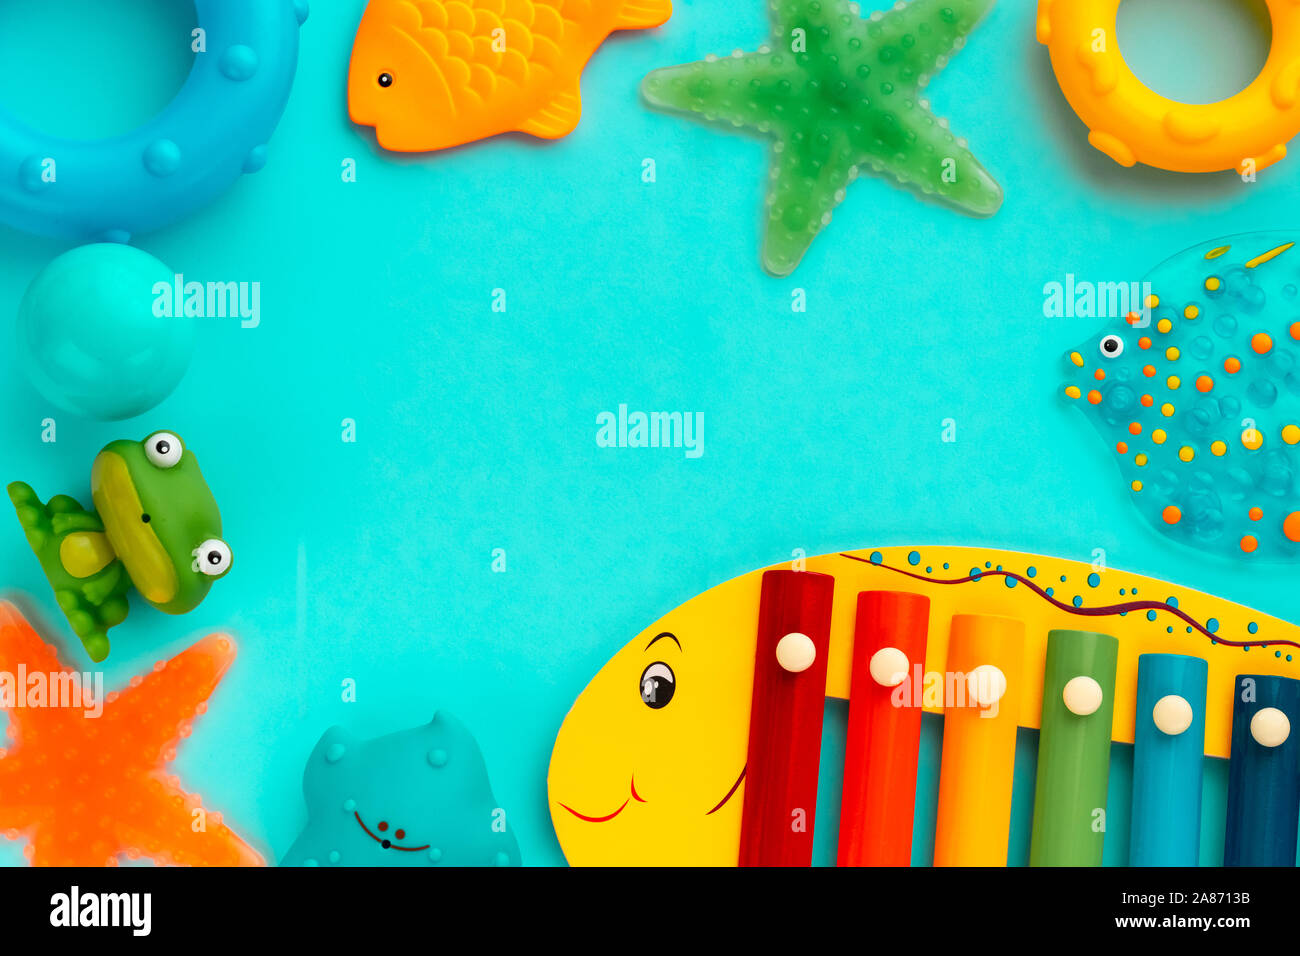 Top view on children's educational and music games, frame from multicolored kids toys on light blue paper background. Circles, fish, frog, starfish, xylophone. Sea, ocean concept. Flat lay, copy space for text. Stock Photo